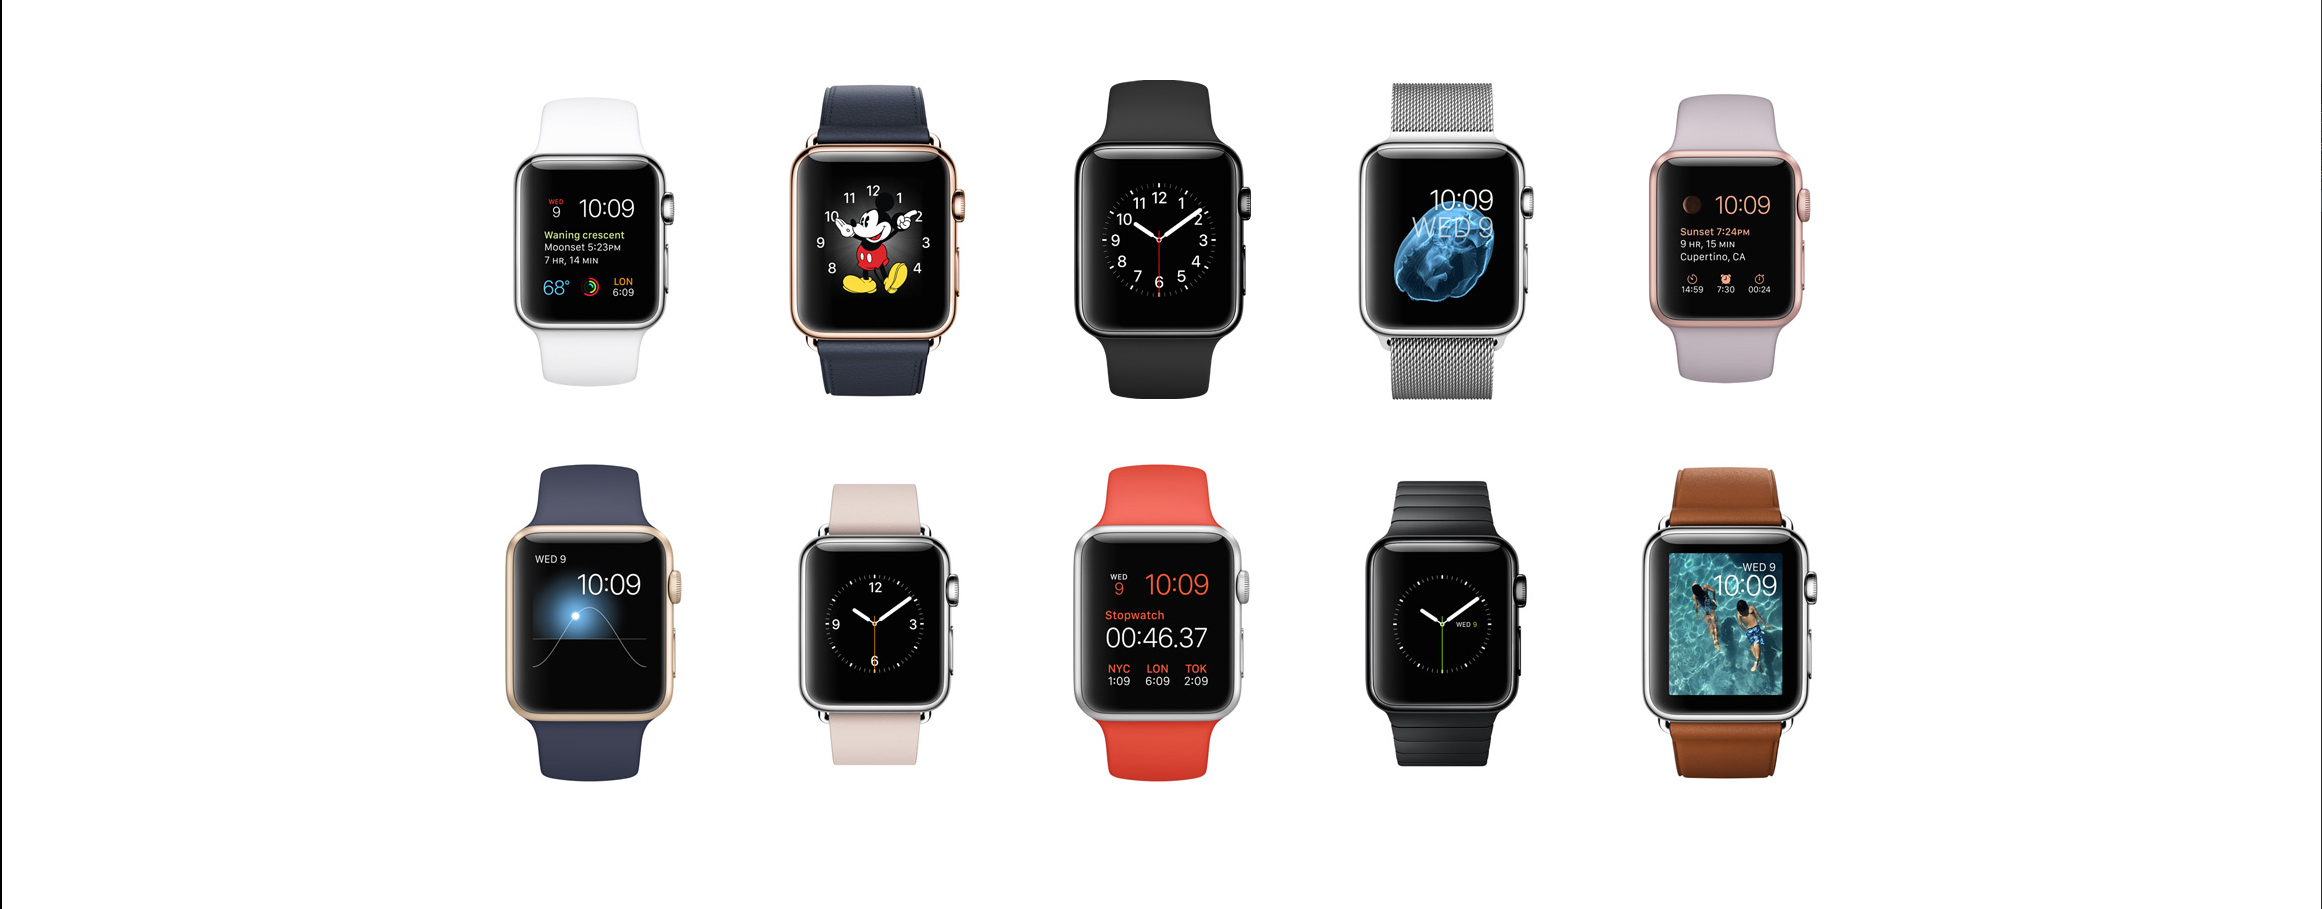 WatchOS 2.0.1 for the Apple Watch is here with a number of bug fixes